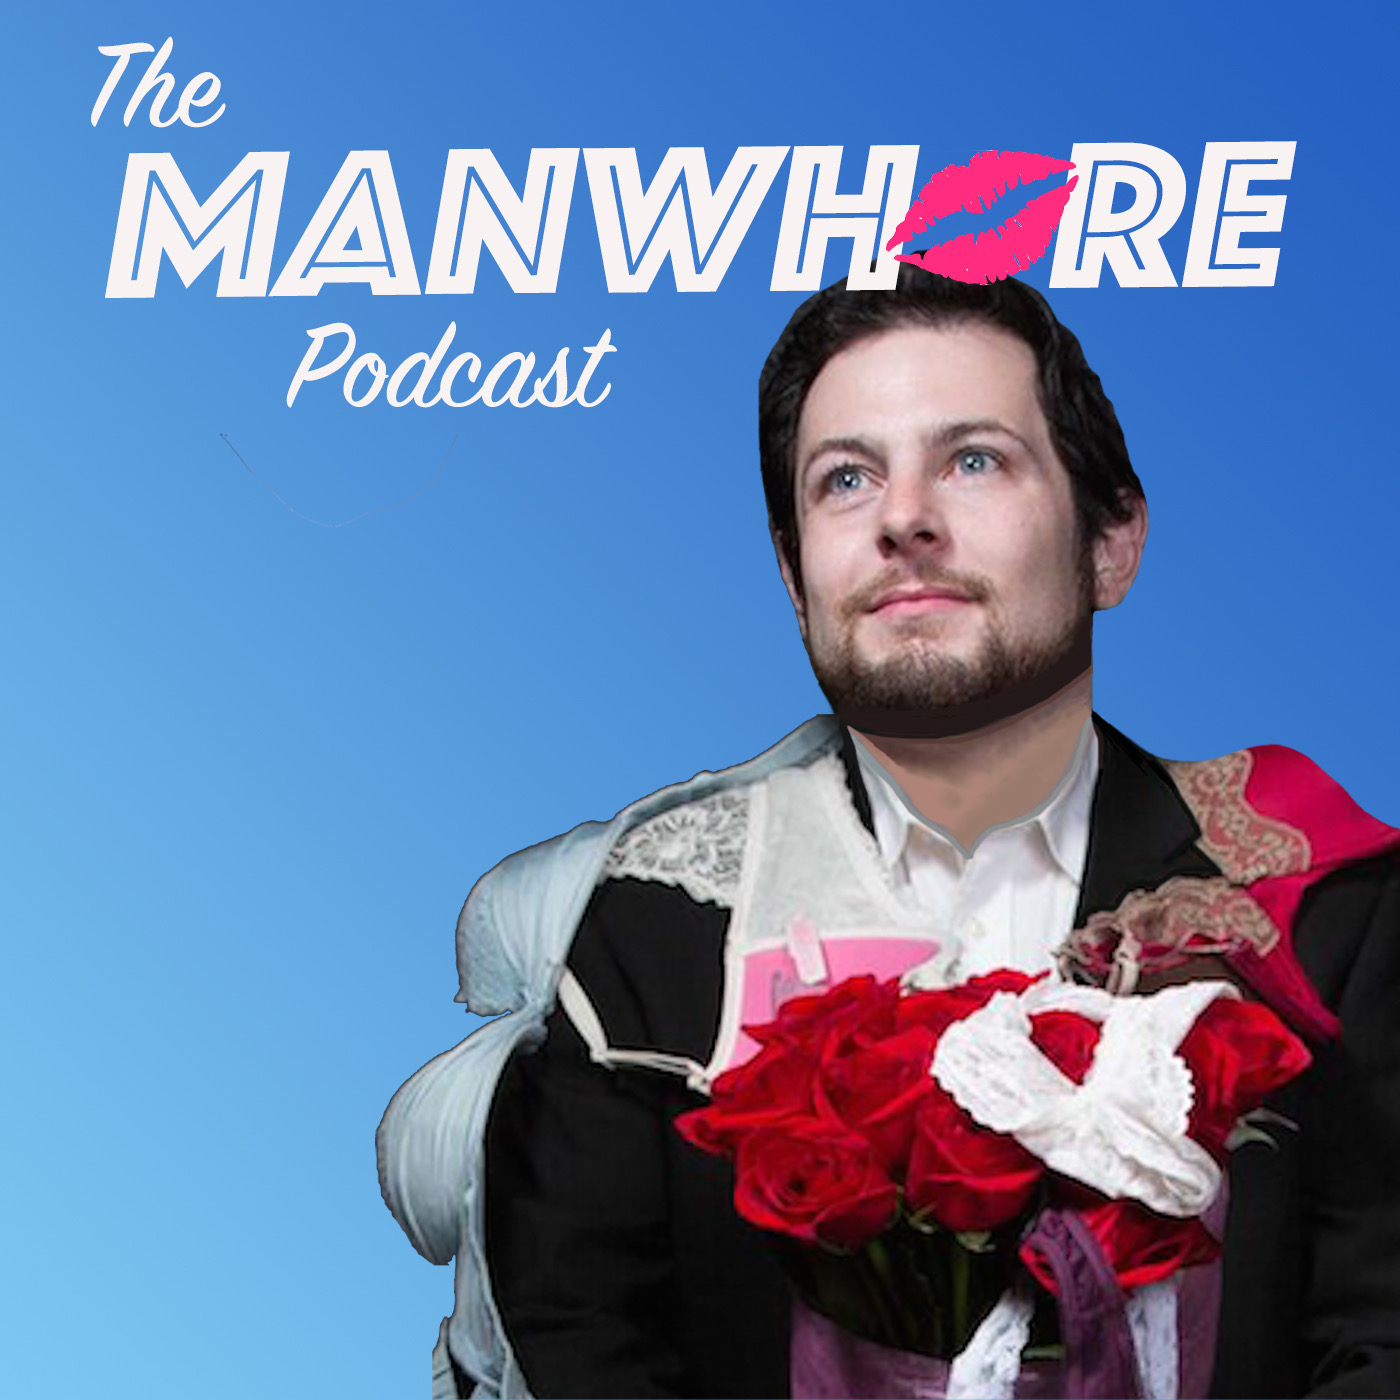 The Manwhore Podcast: A Sex-Positive Quest - Ep. 337: Is Billy A Sex Addict? — Andrea Allan